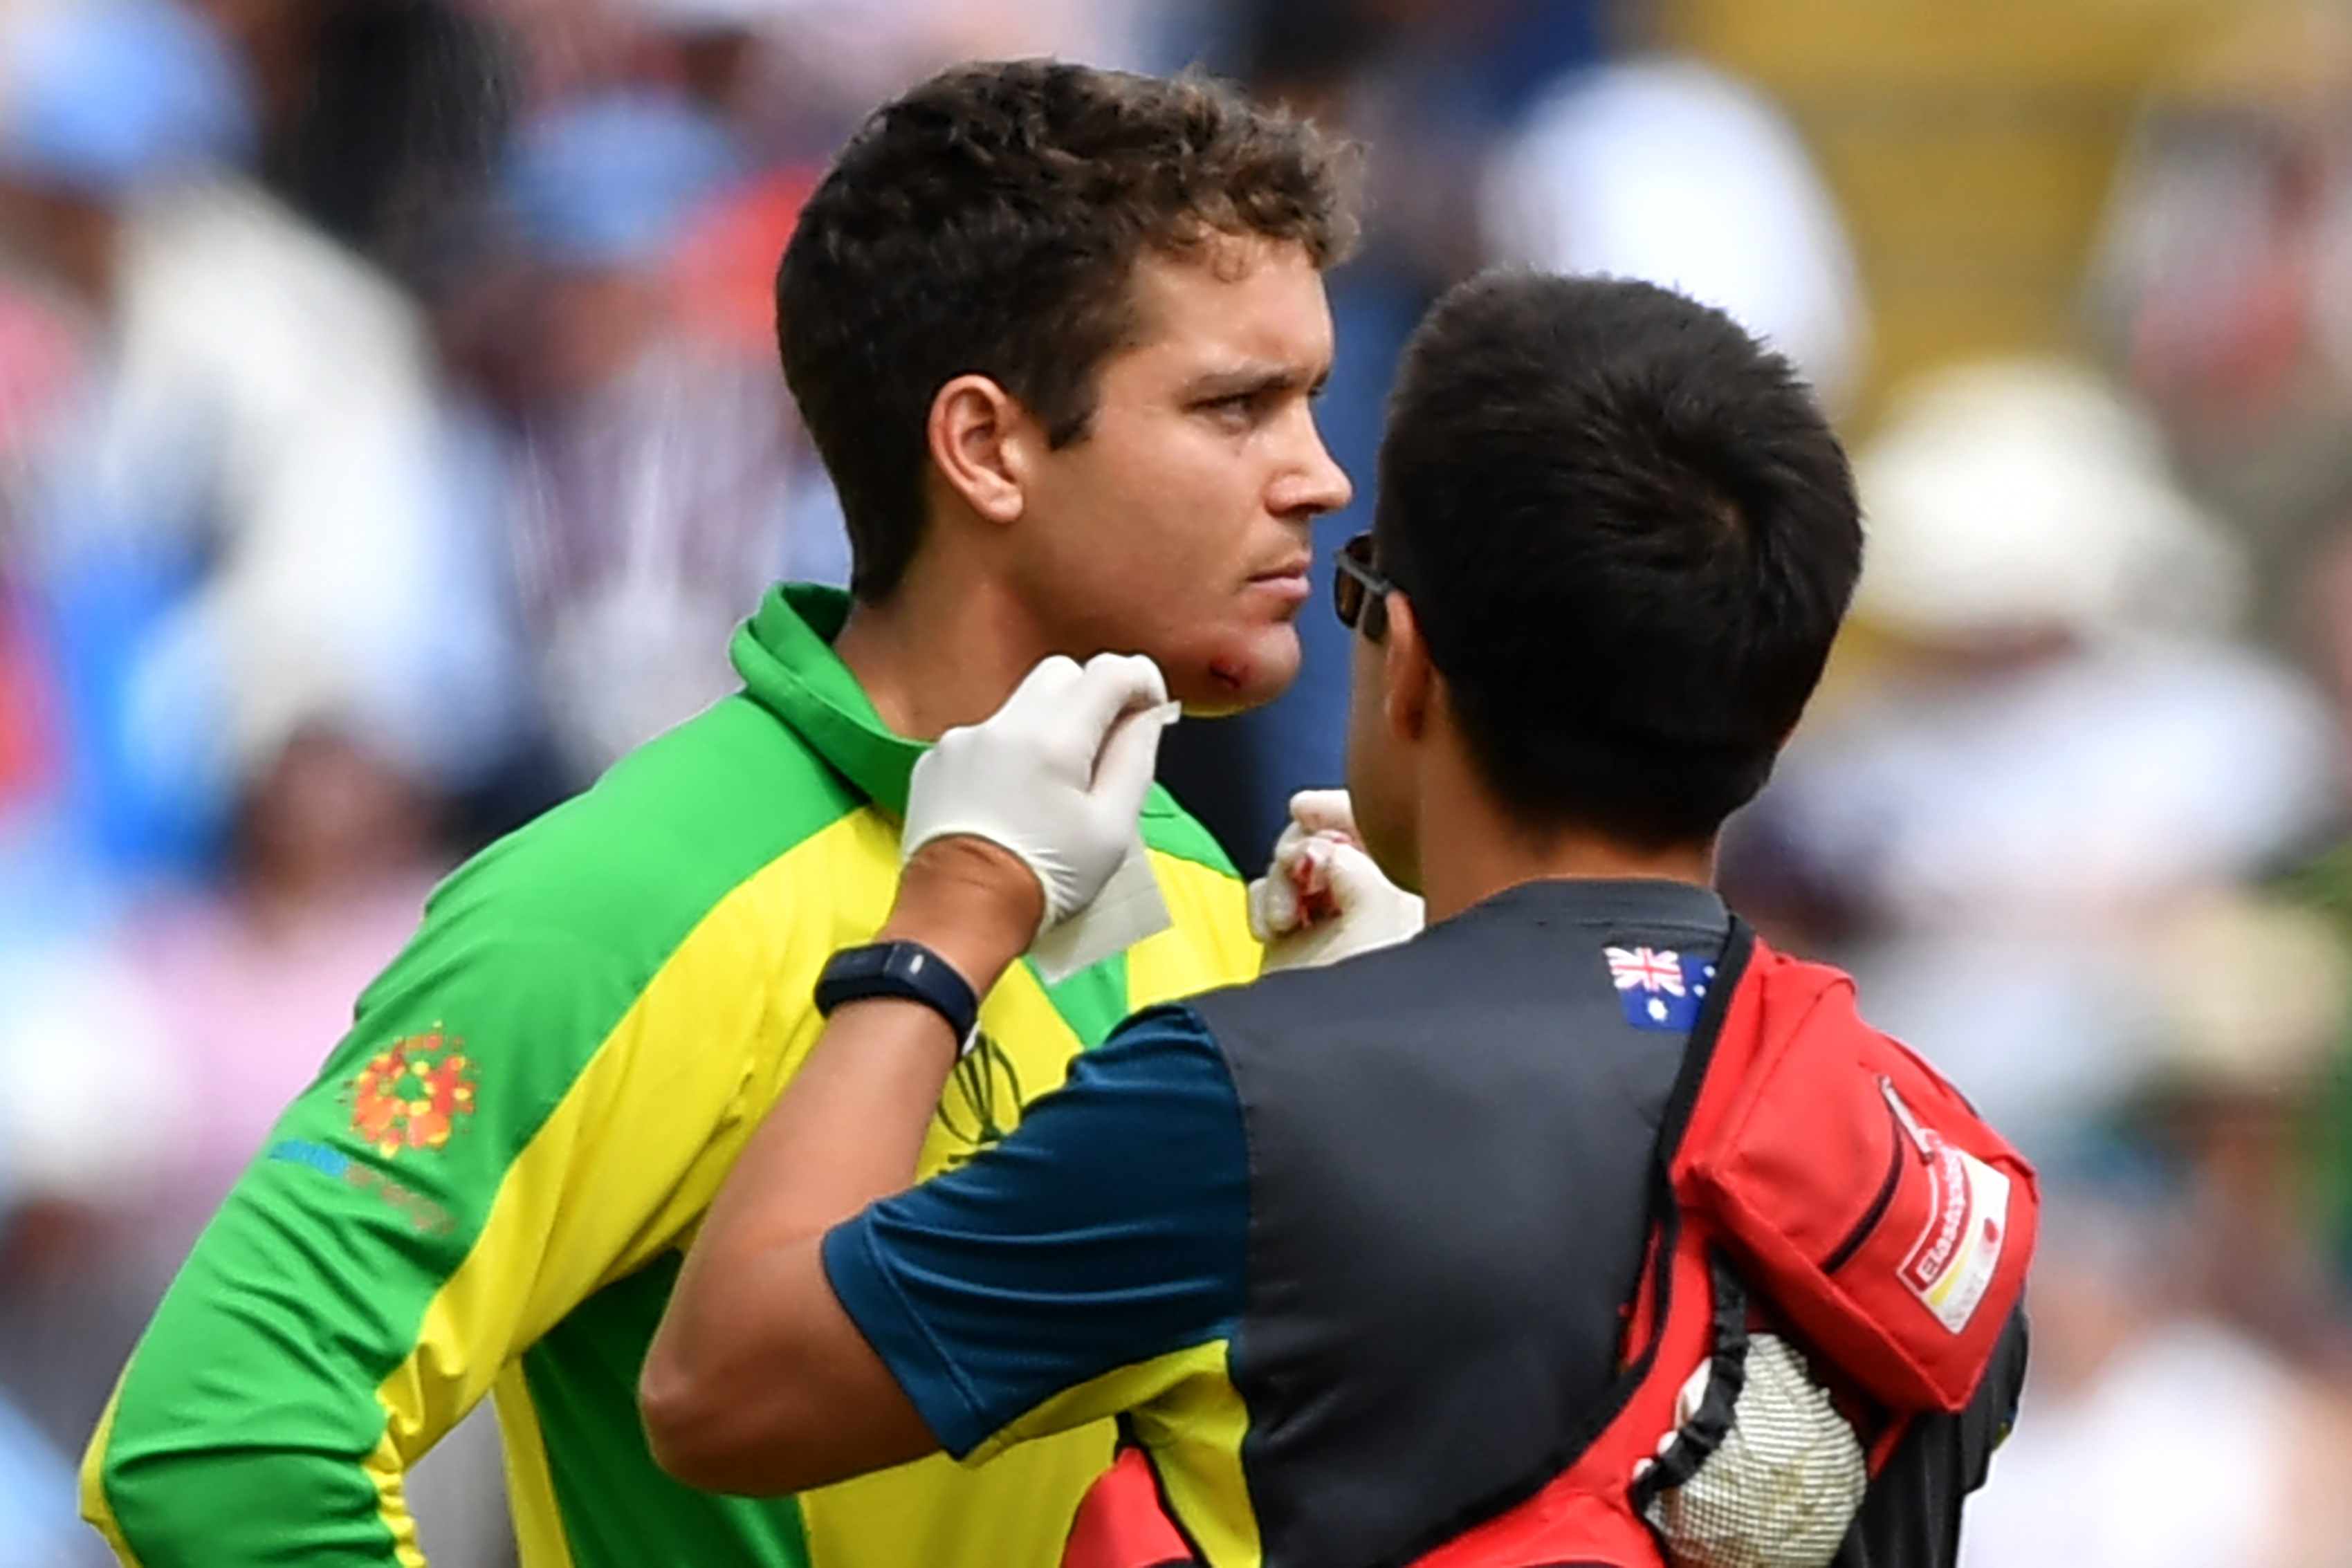 Alex Carey receives medical attention after being hit by a ball. Photo: AFP